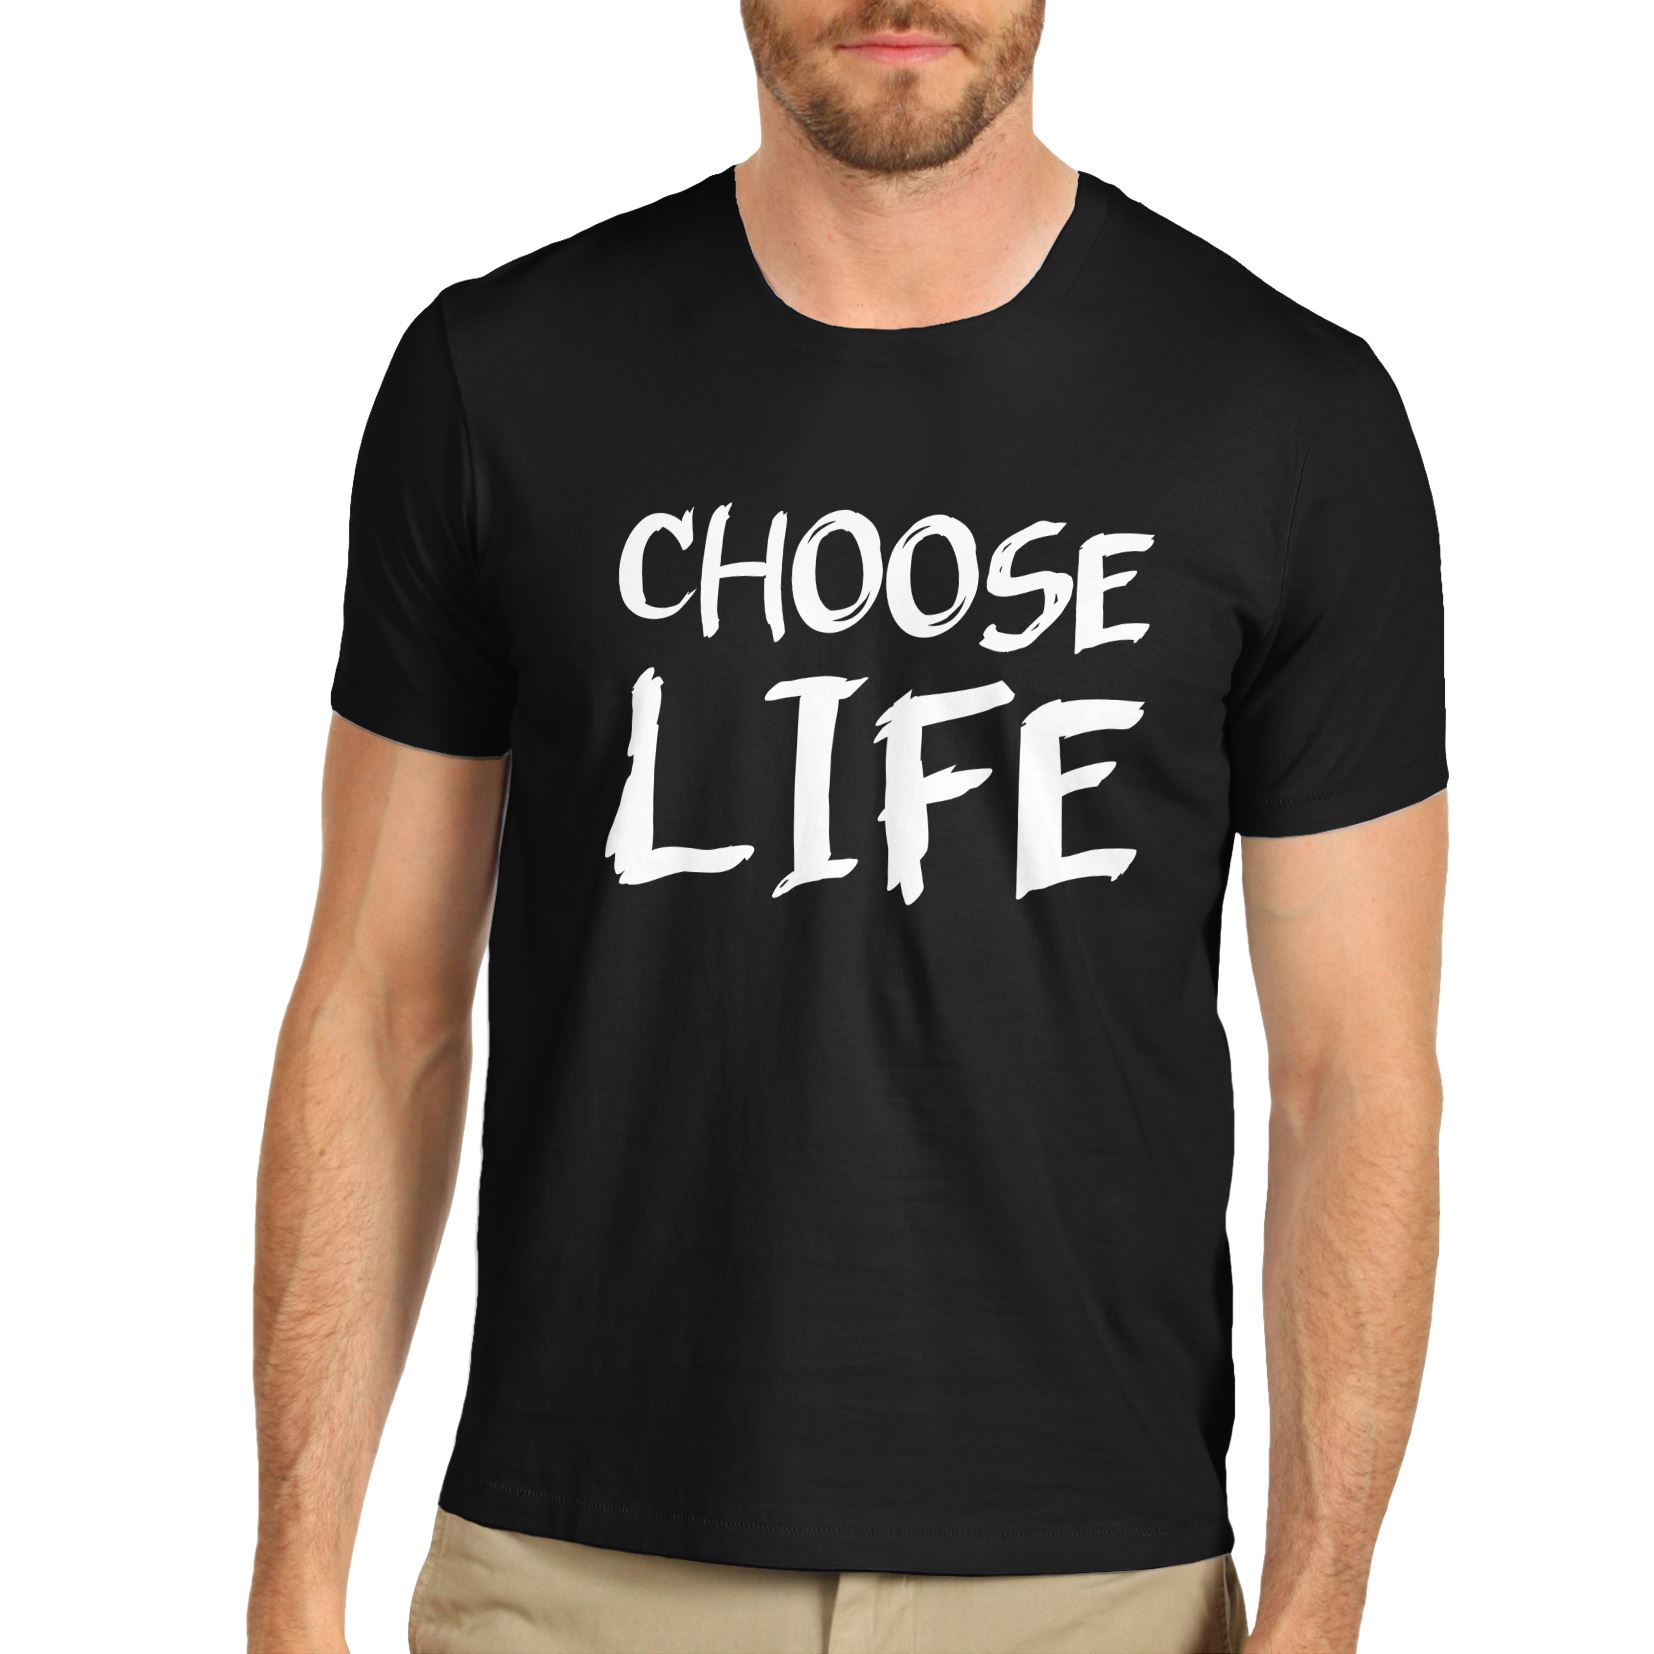 Western Style Mens Cotton Novelty Motivational Design Choose Life T Shirt Black Small Normal